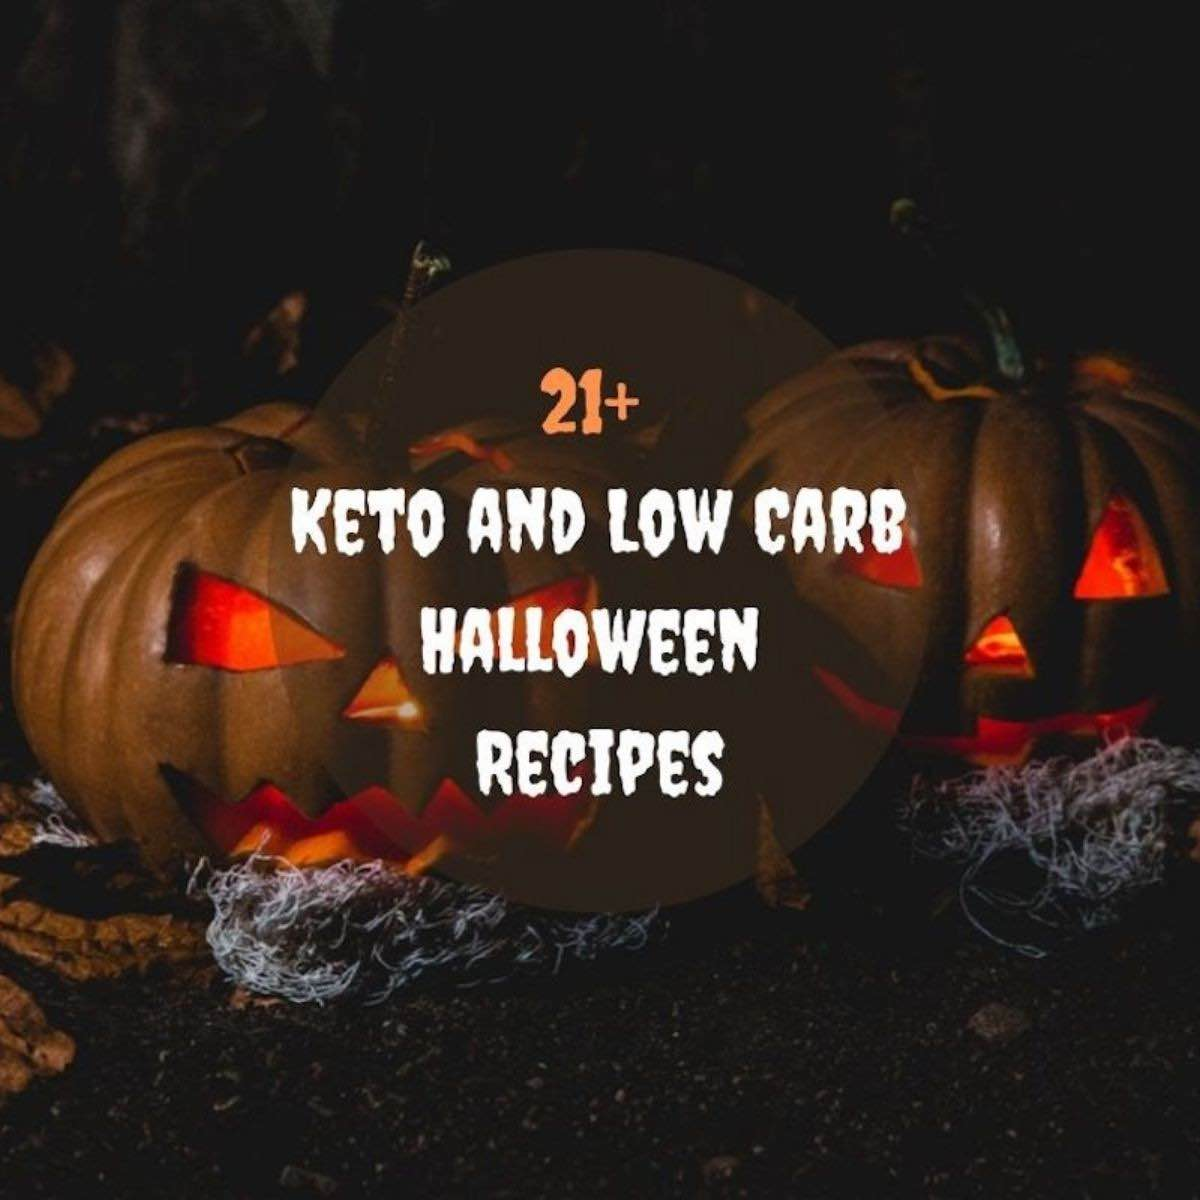 Low Carb Halloween Recipes to choose from